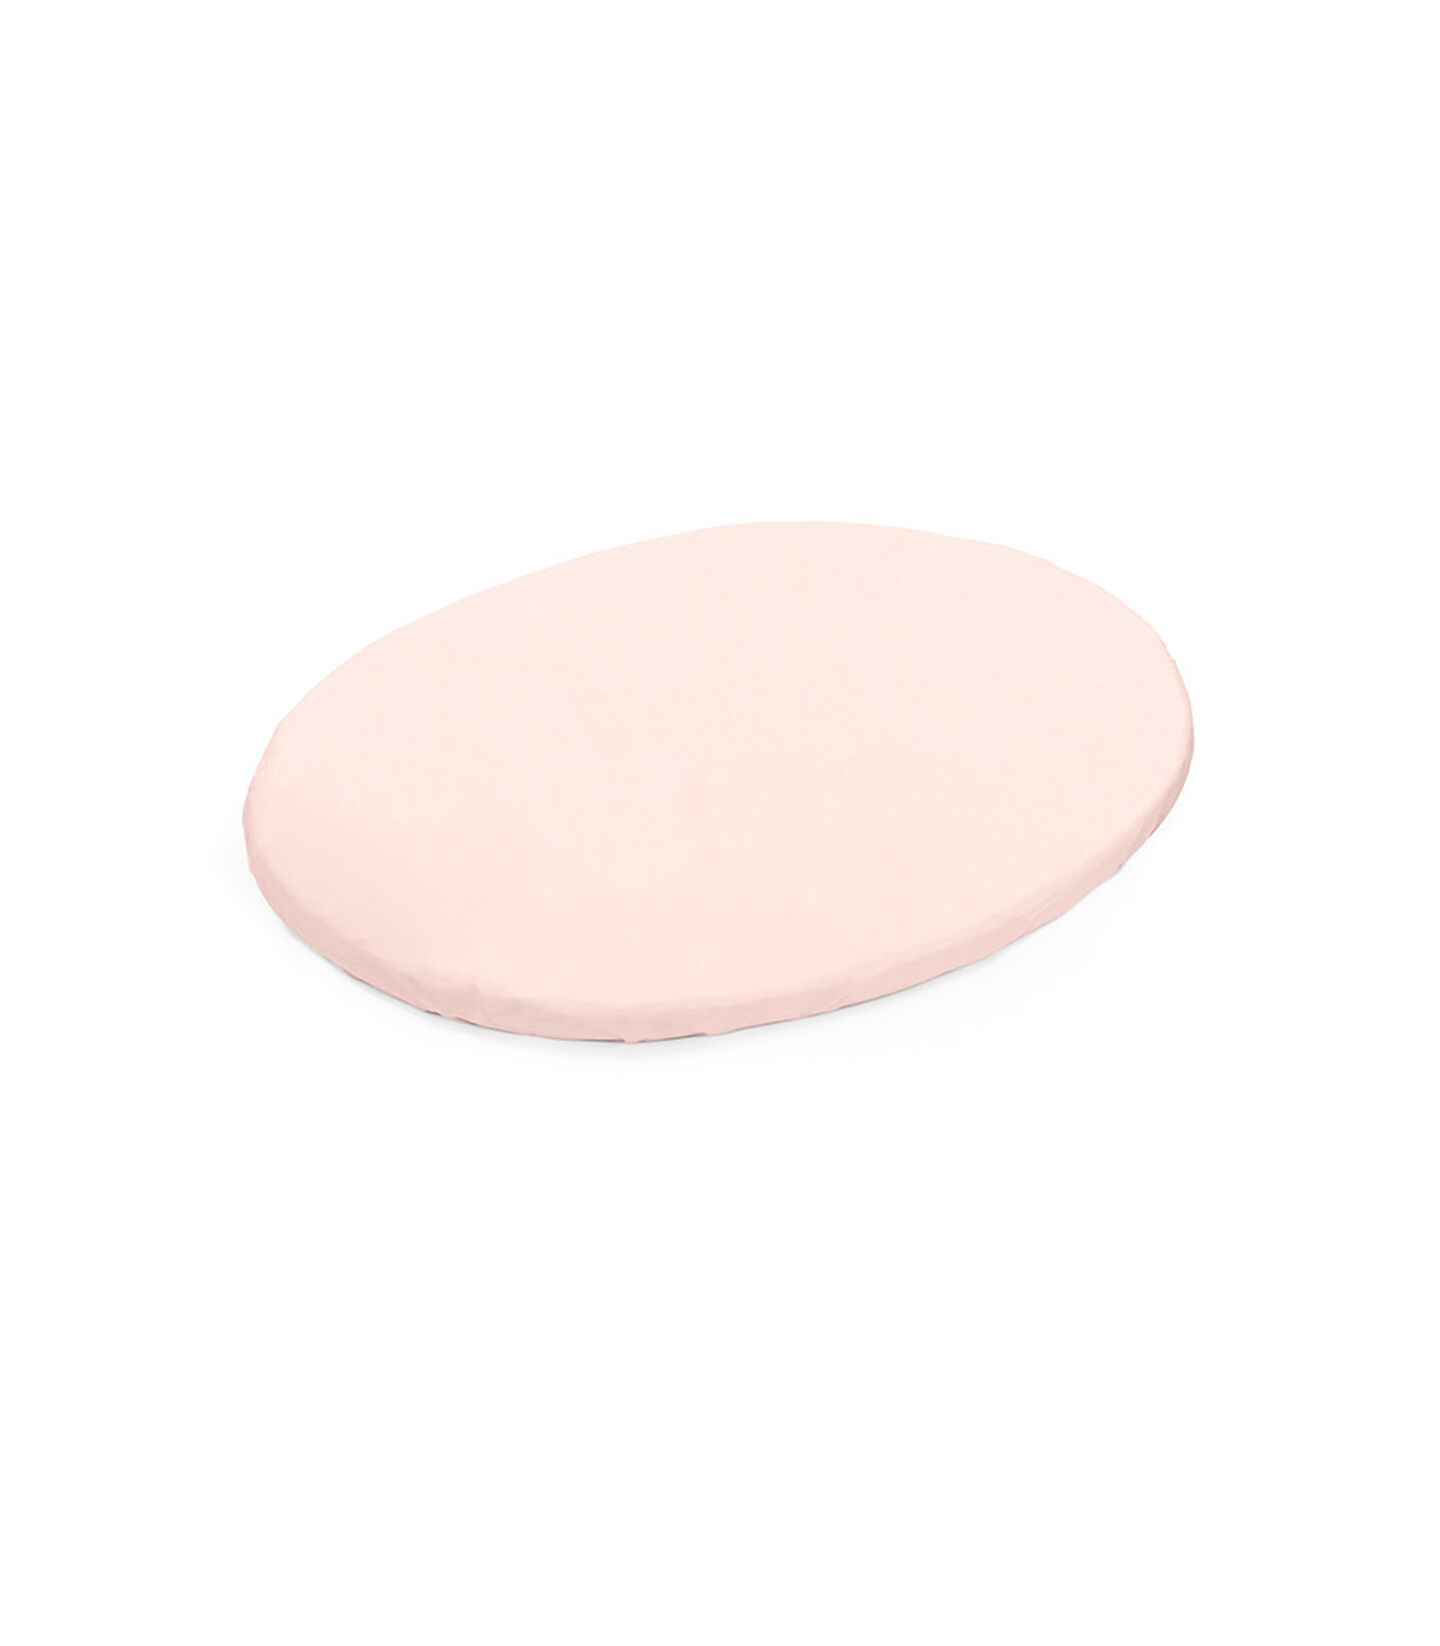 Stokke® Sleepi™ Mini Fitted Sheet Peachy Pink, Peachy Pink, mainview view 2